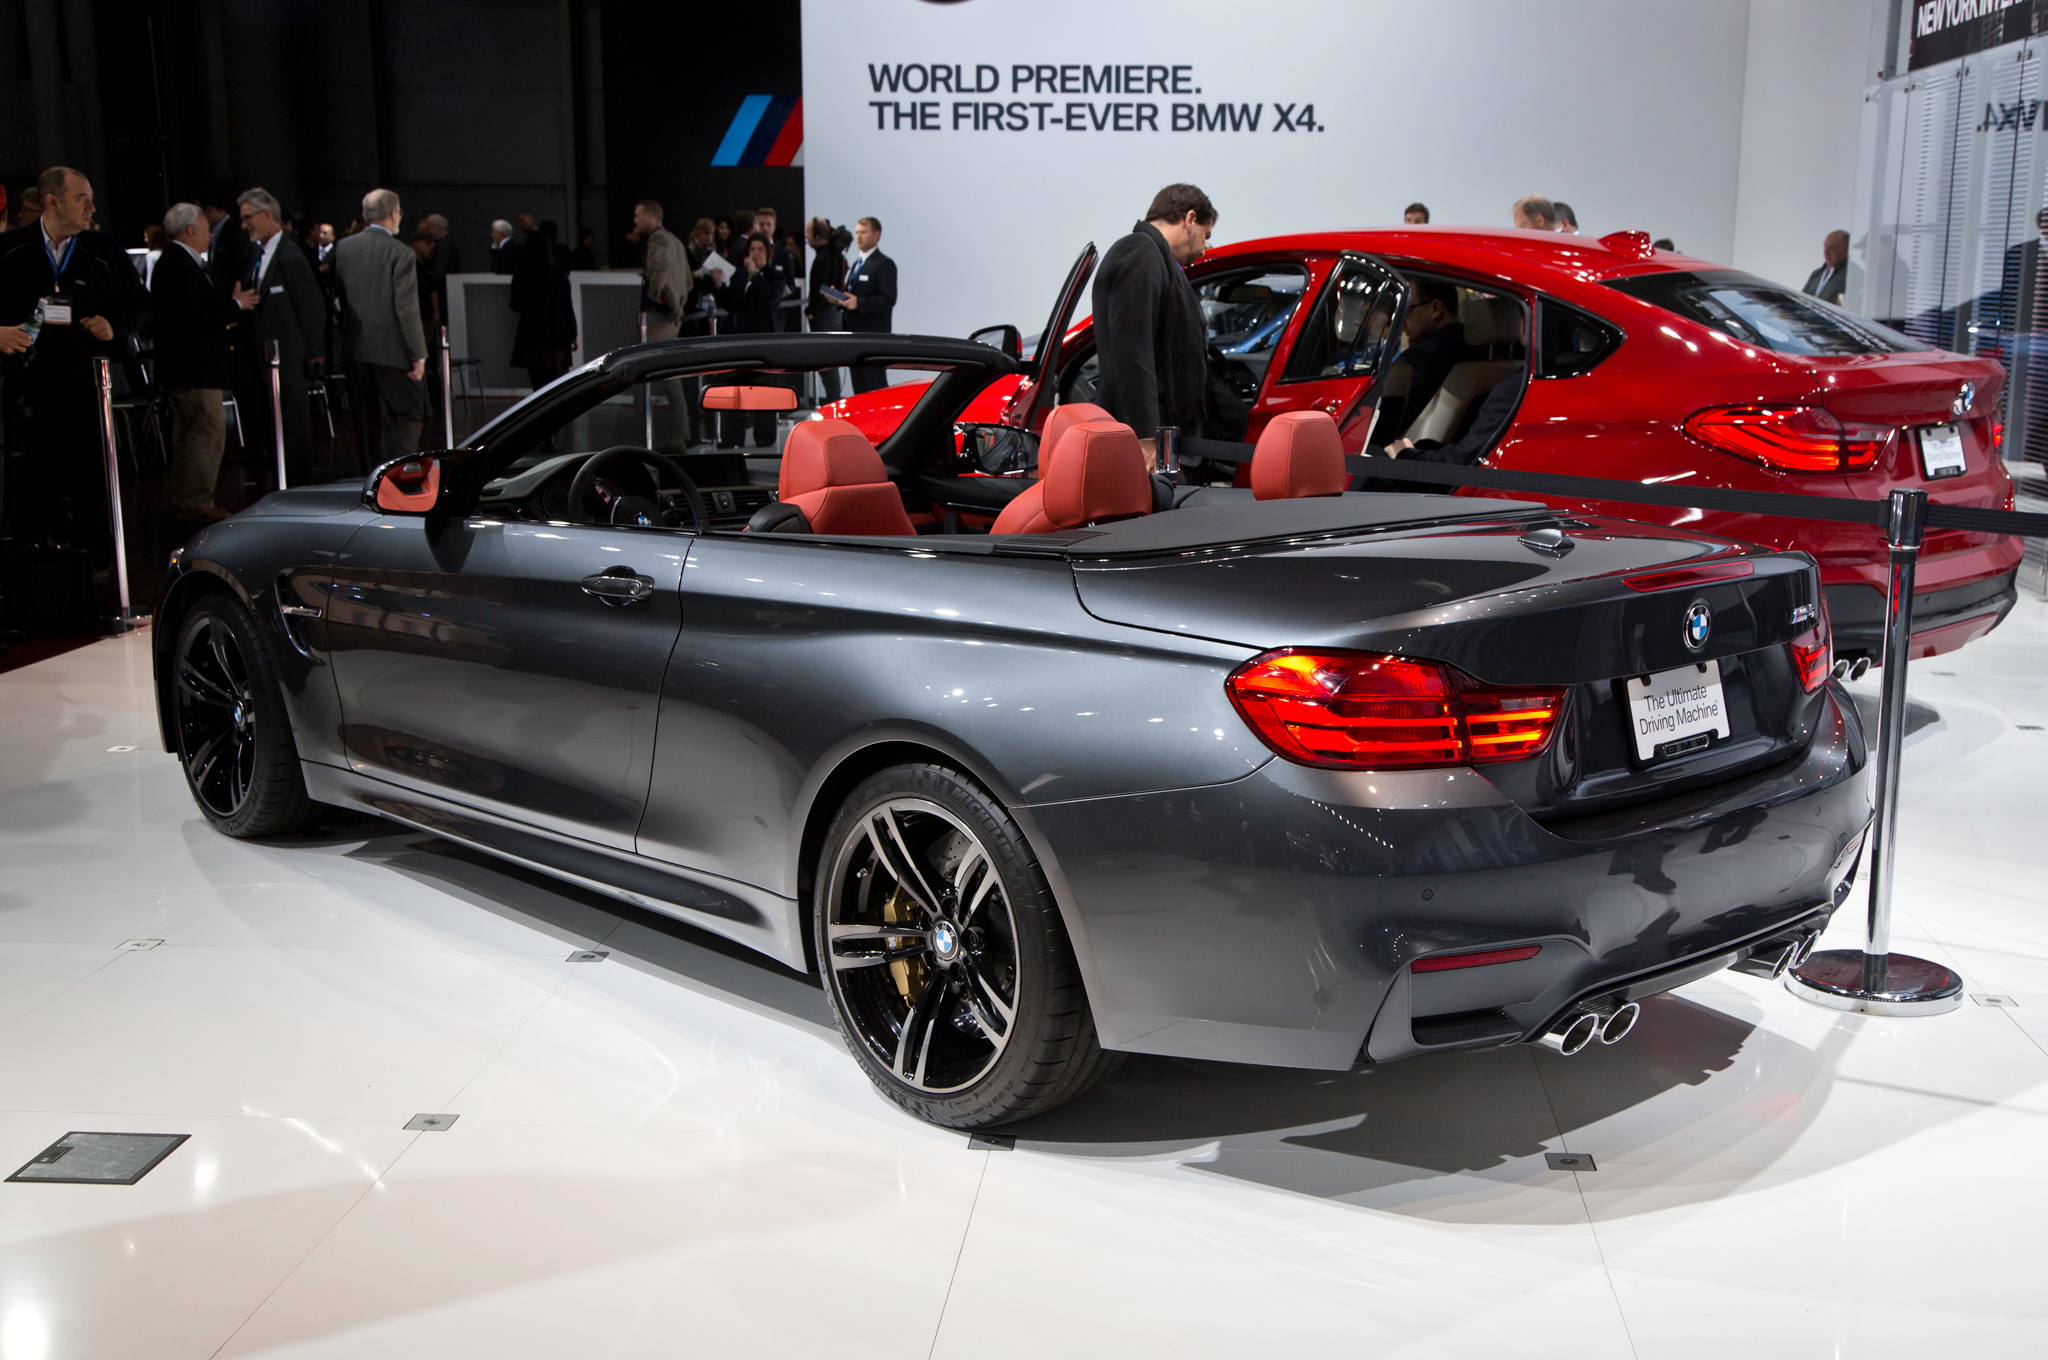 2015 Bmw M4 Convertible Rear Side Auto Show (Photo 40 of 50)